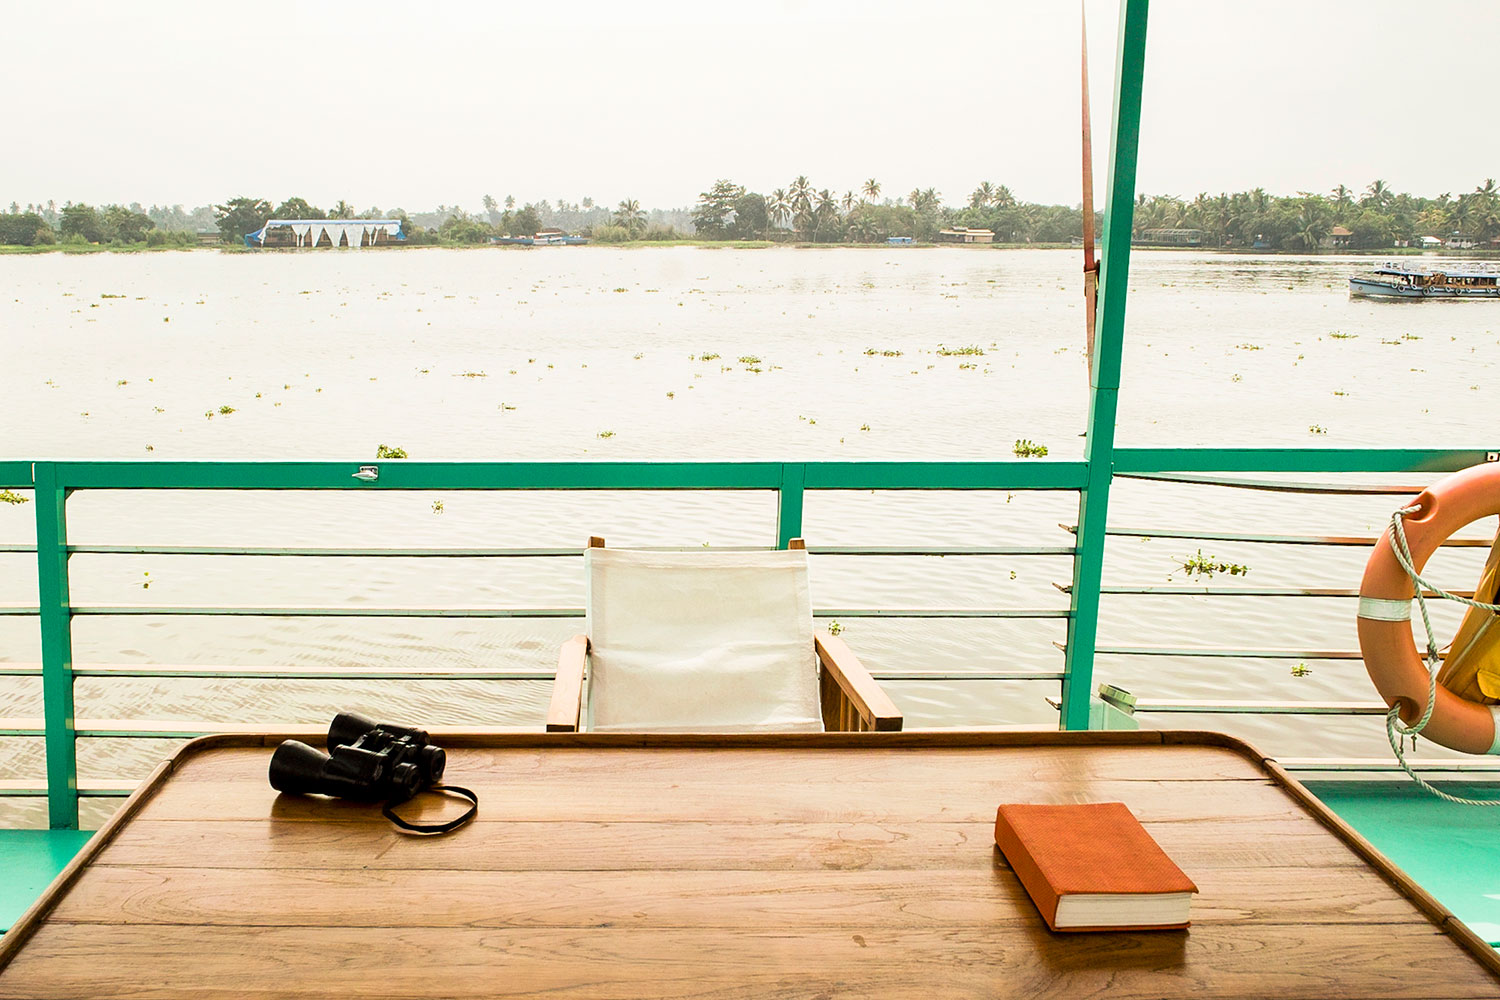 kerala_discovery_thevoyageur08